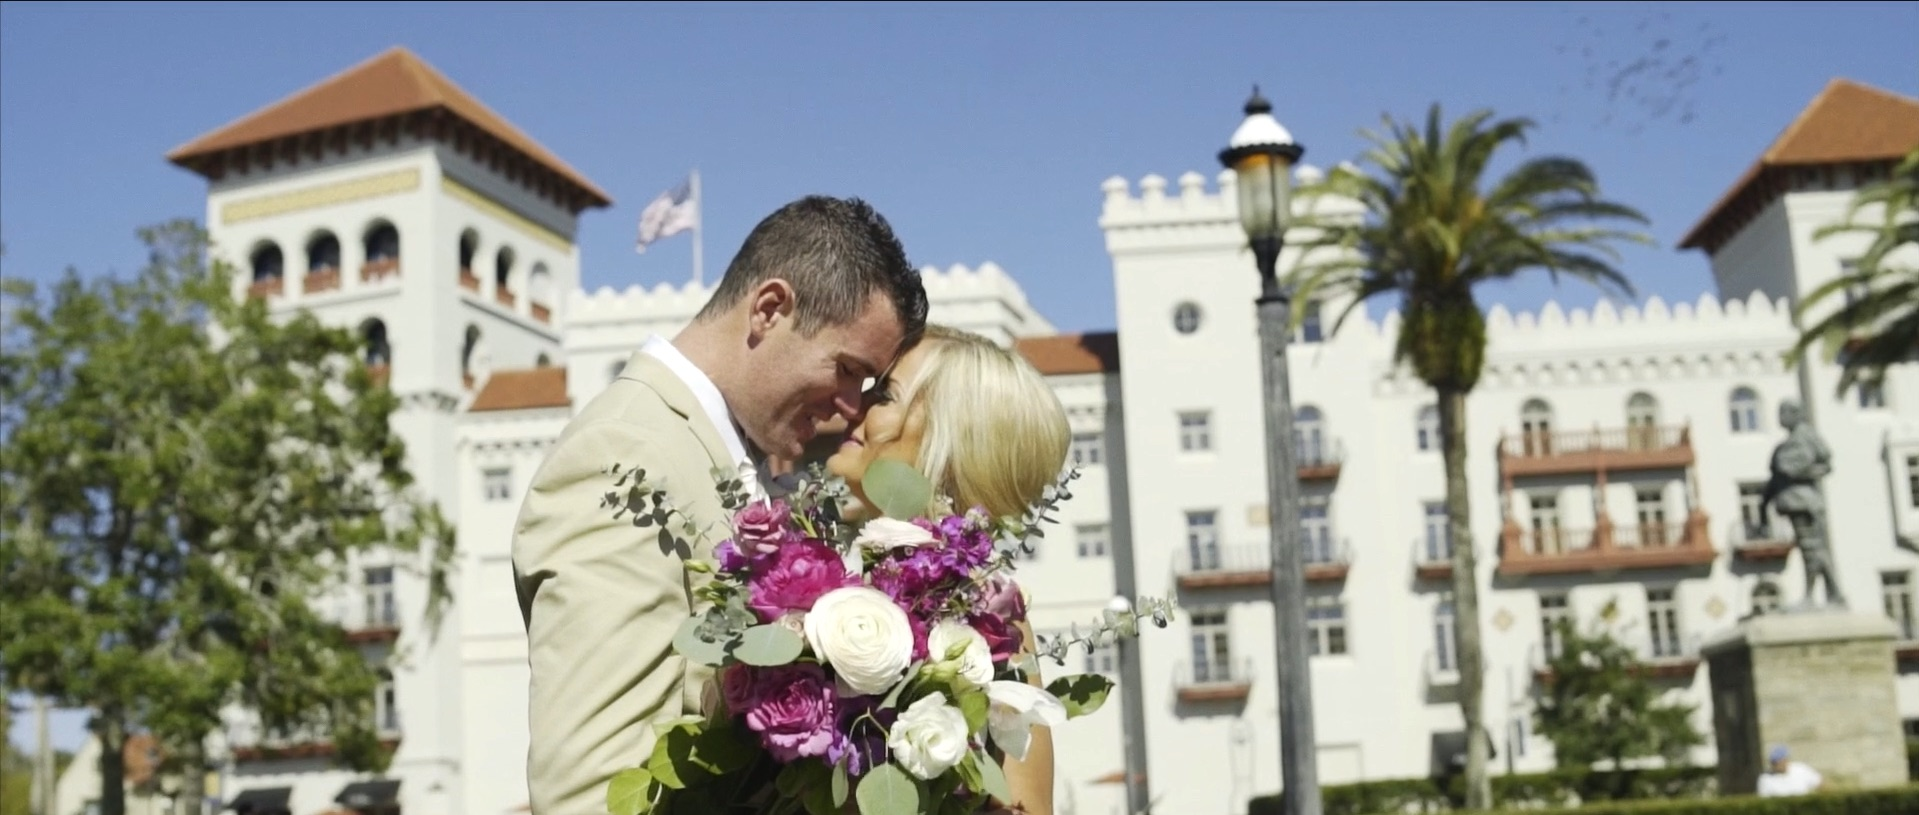 Kelly + Brendan | St. Augustine, Florida | Treasury on the Plaza